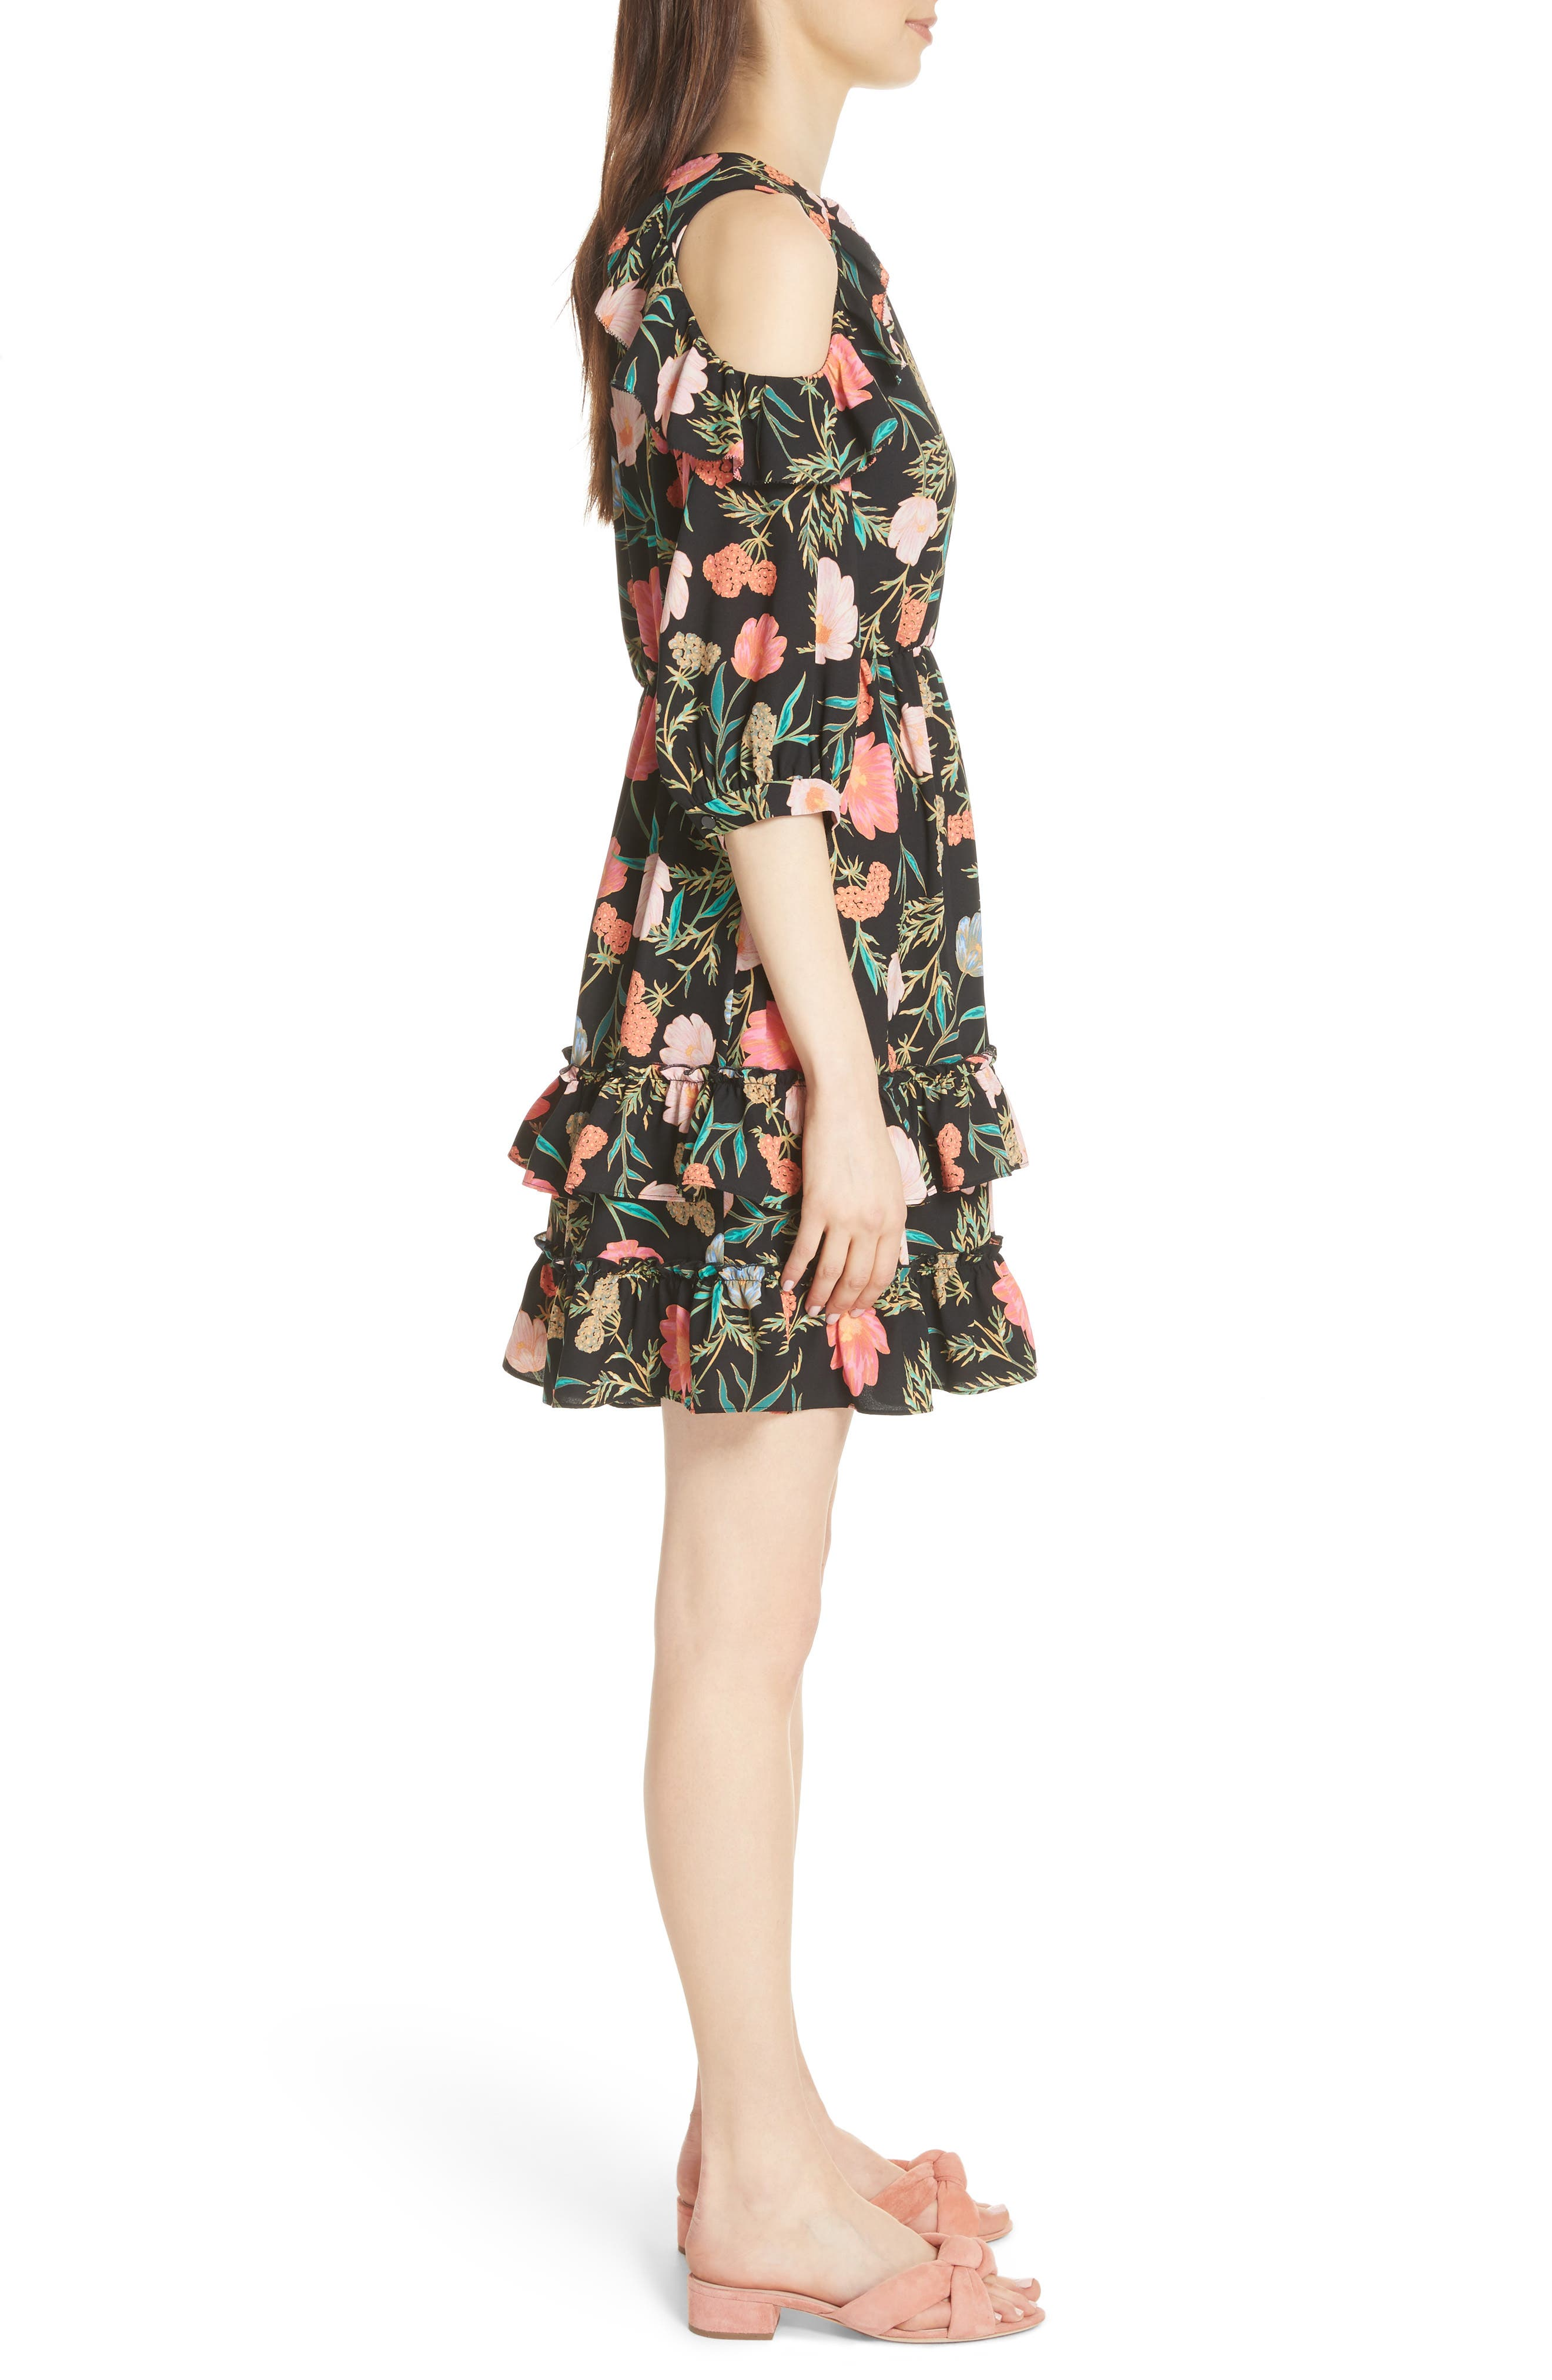 blossom cold shoulder dress,                             Alternate thumbnail 3, color,                             001